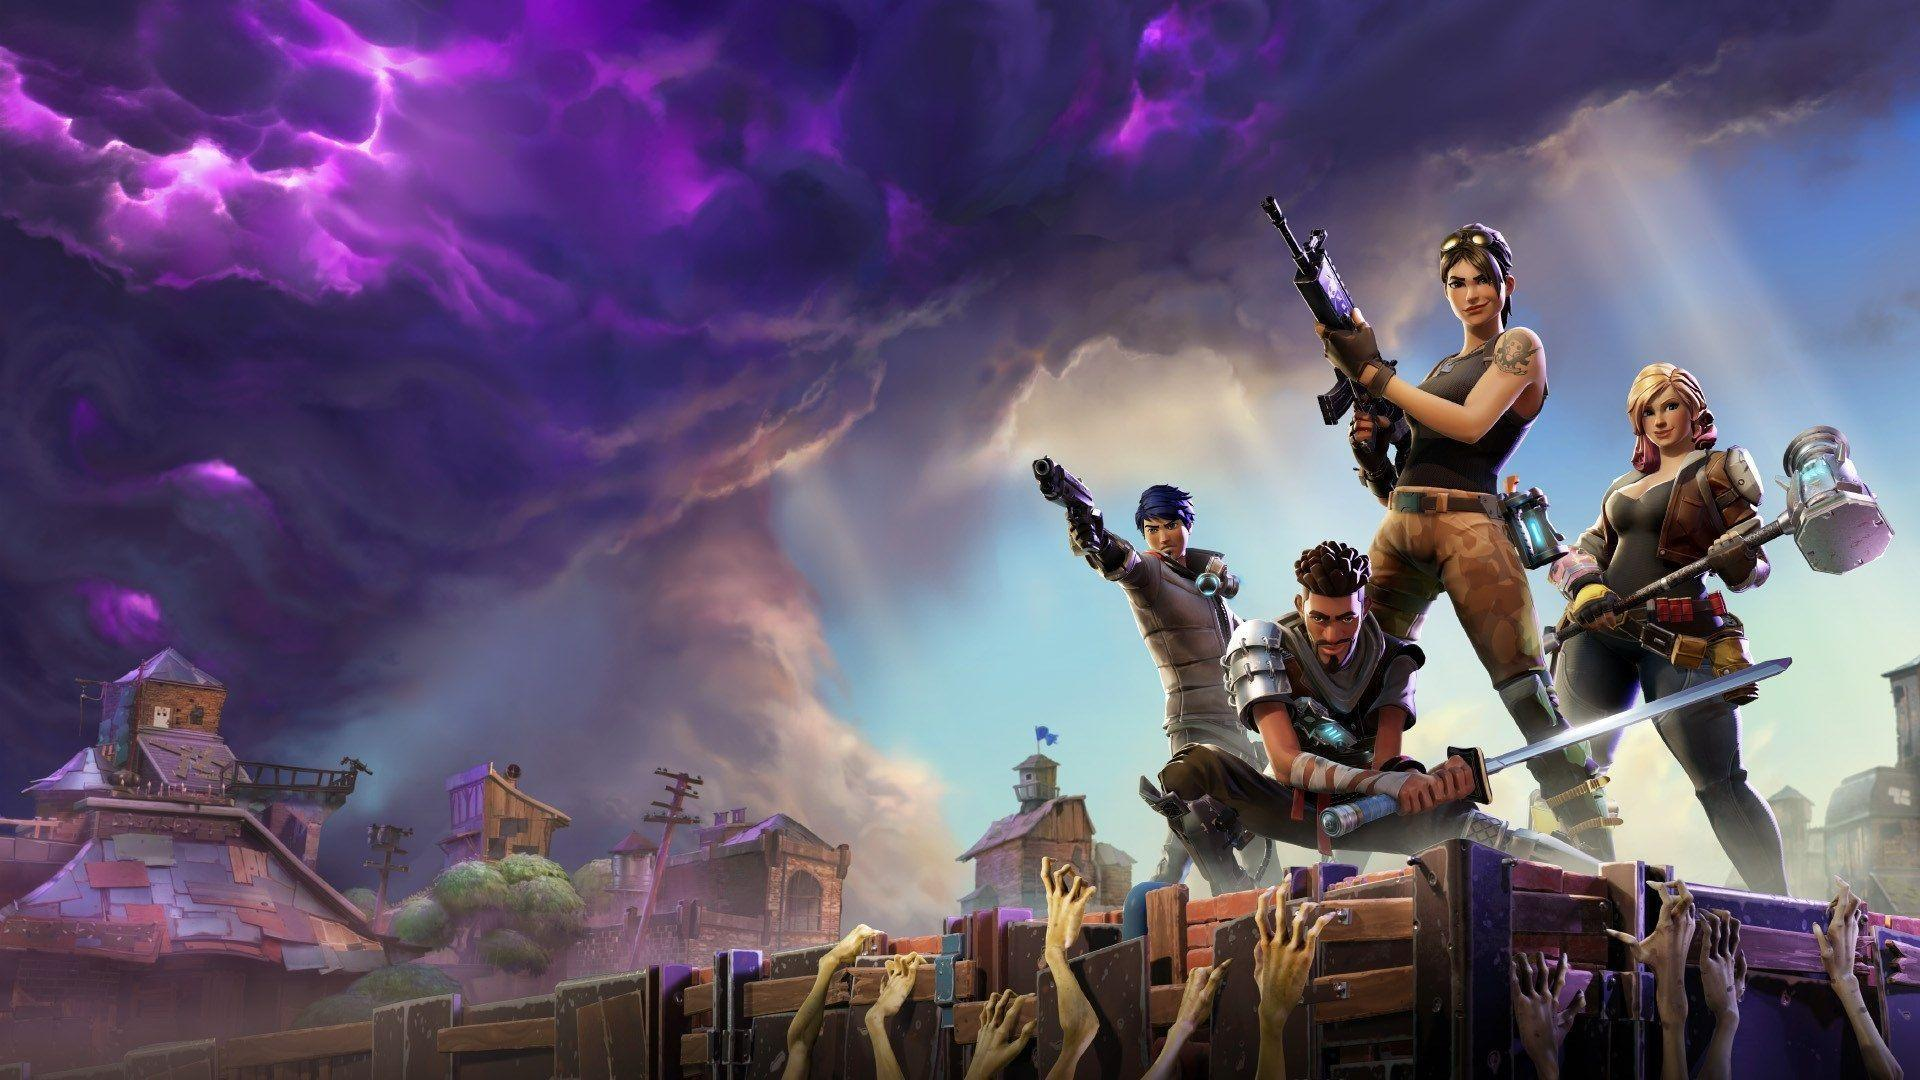 Fortnite Desktop Full Screen Wallpapers Wallpaper Cave